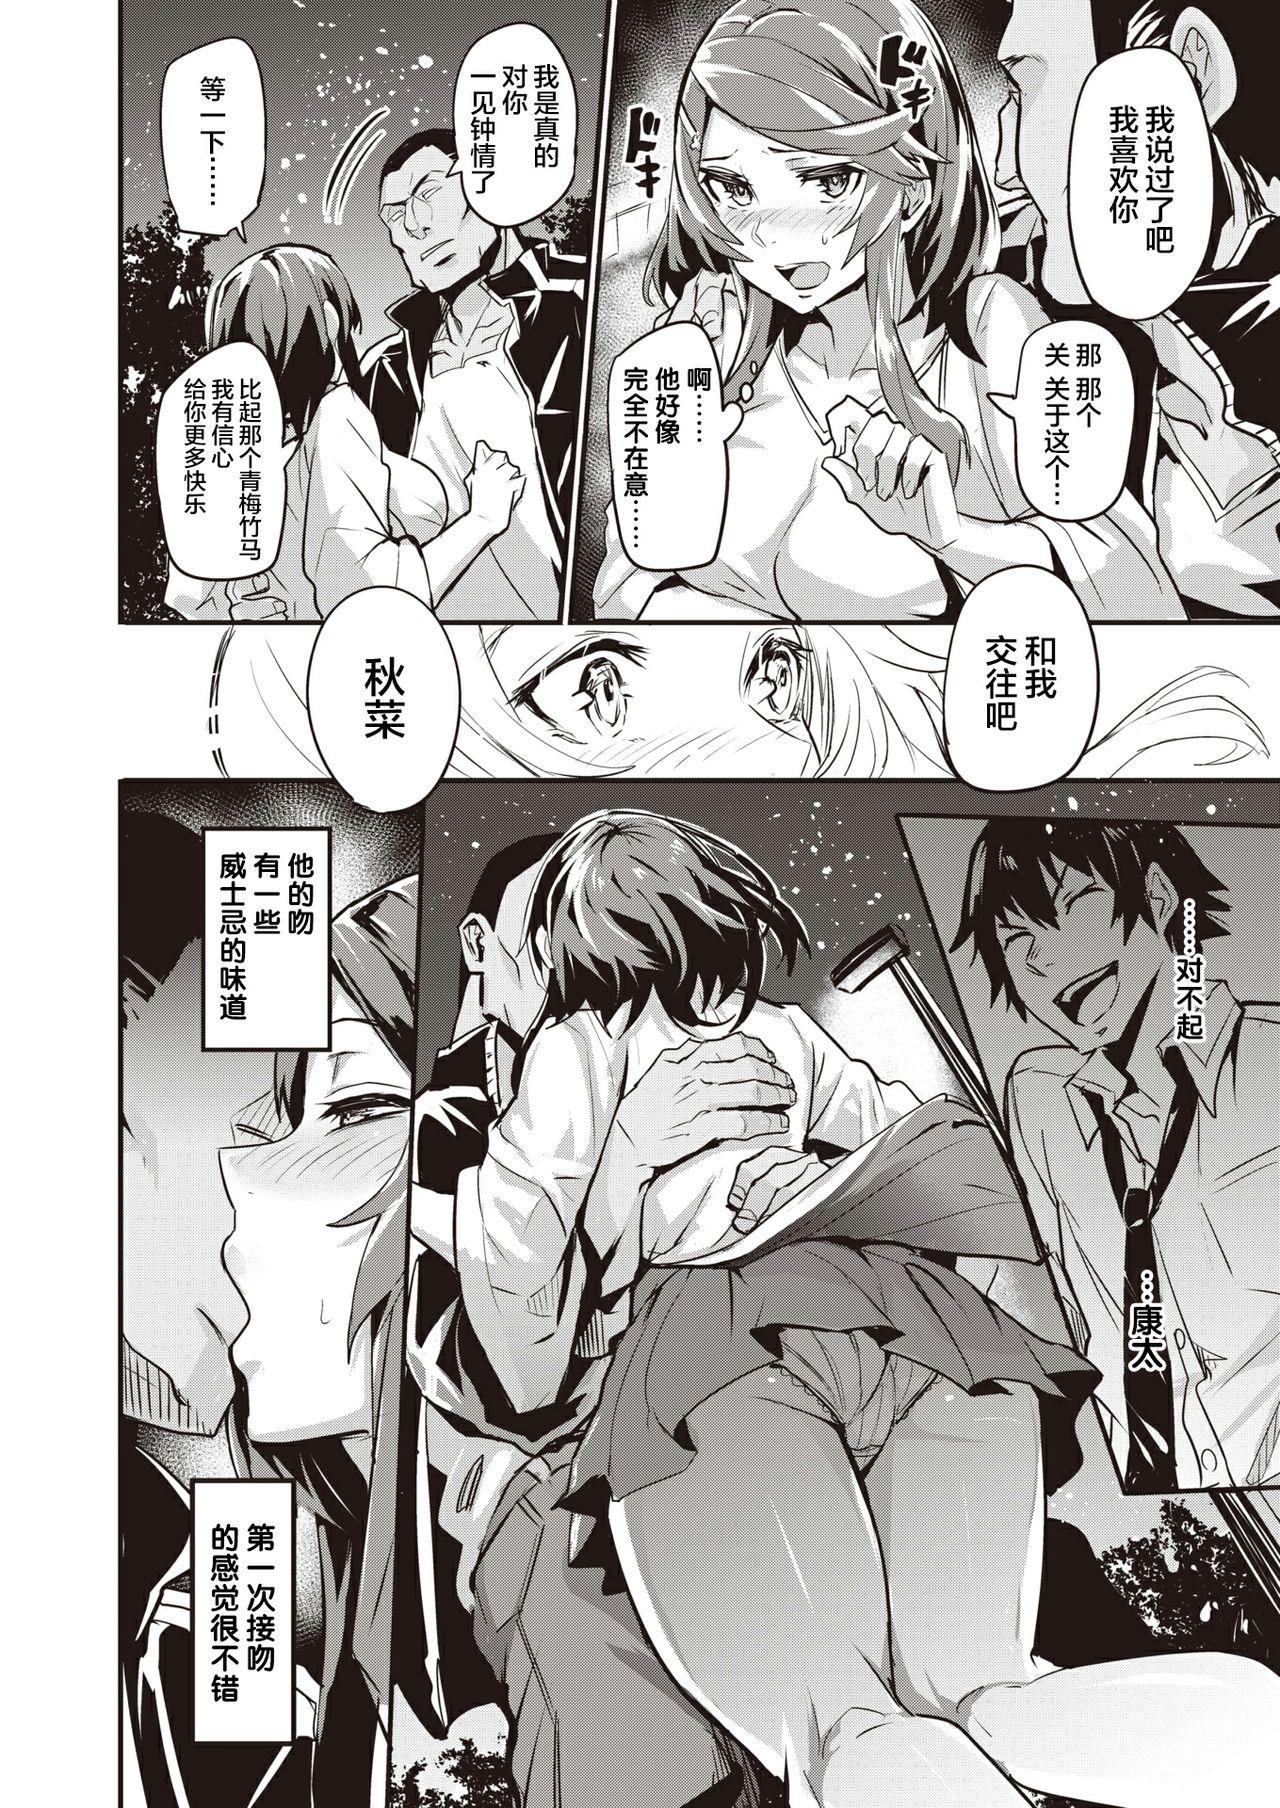 [Dramus] Hitorijime - first come first served Ch. 1-5 [Chinese] [牛头人部落×新桥月白日语社] 48